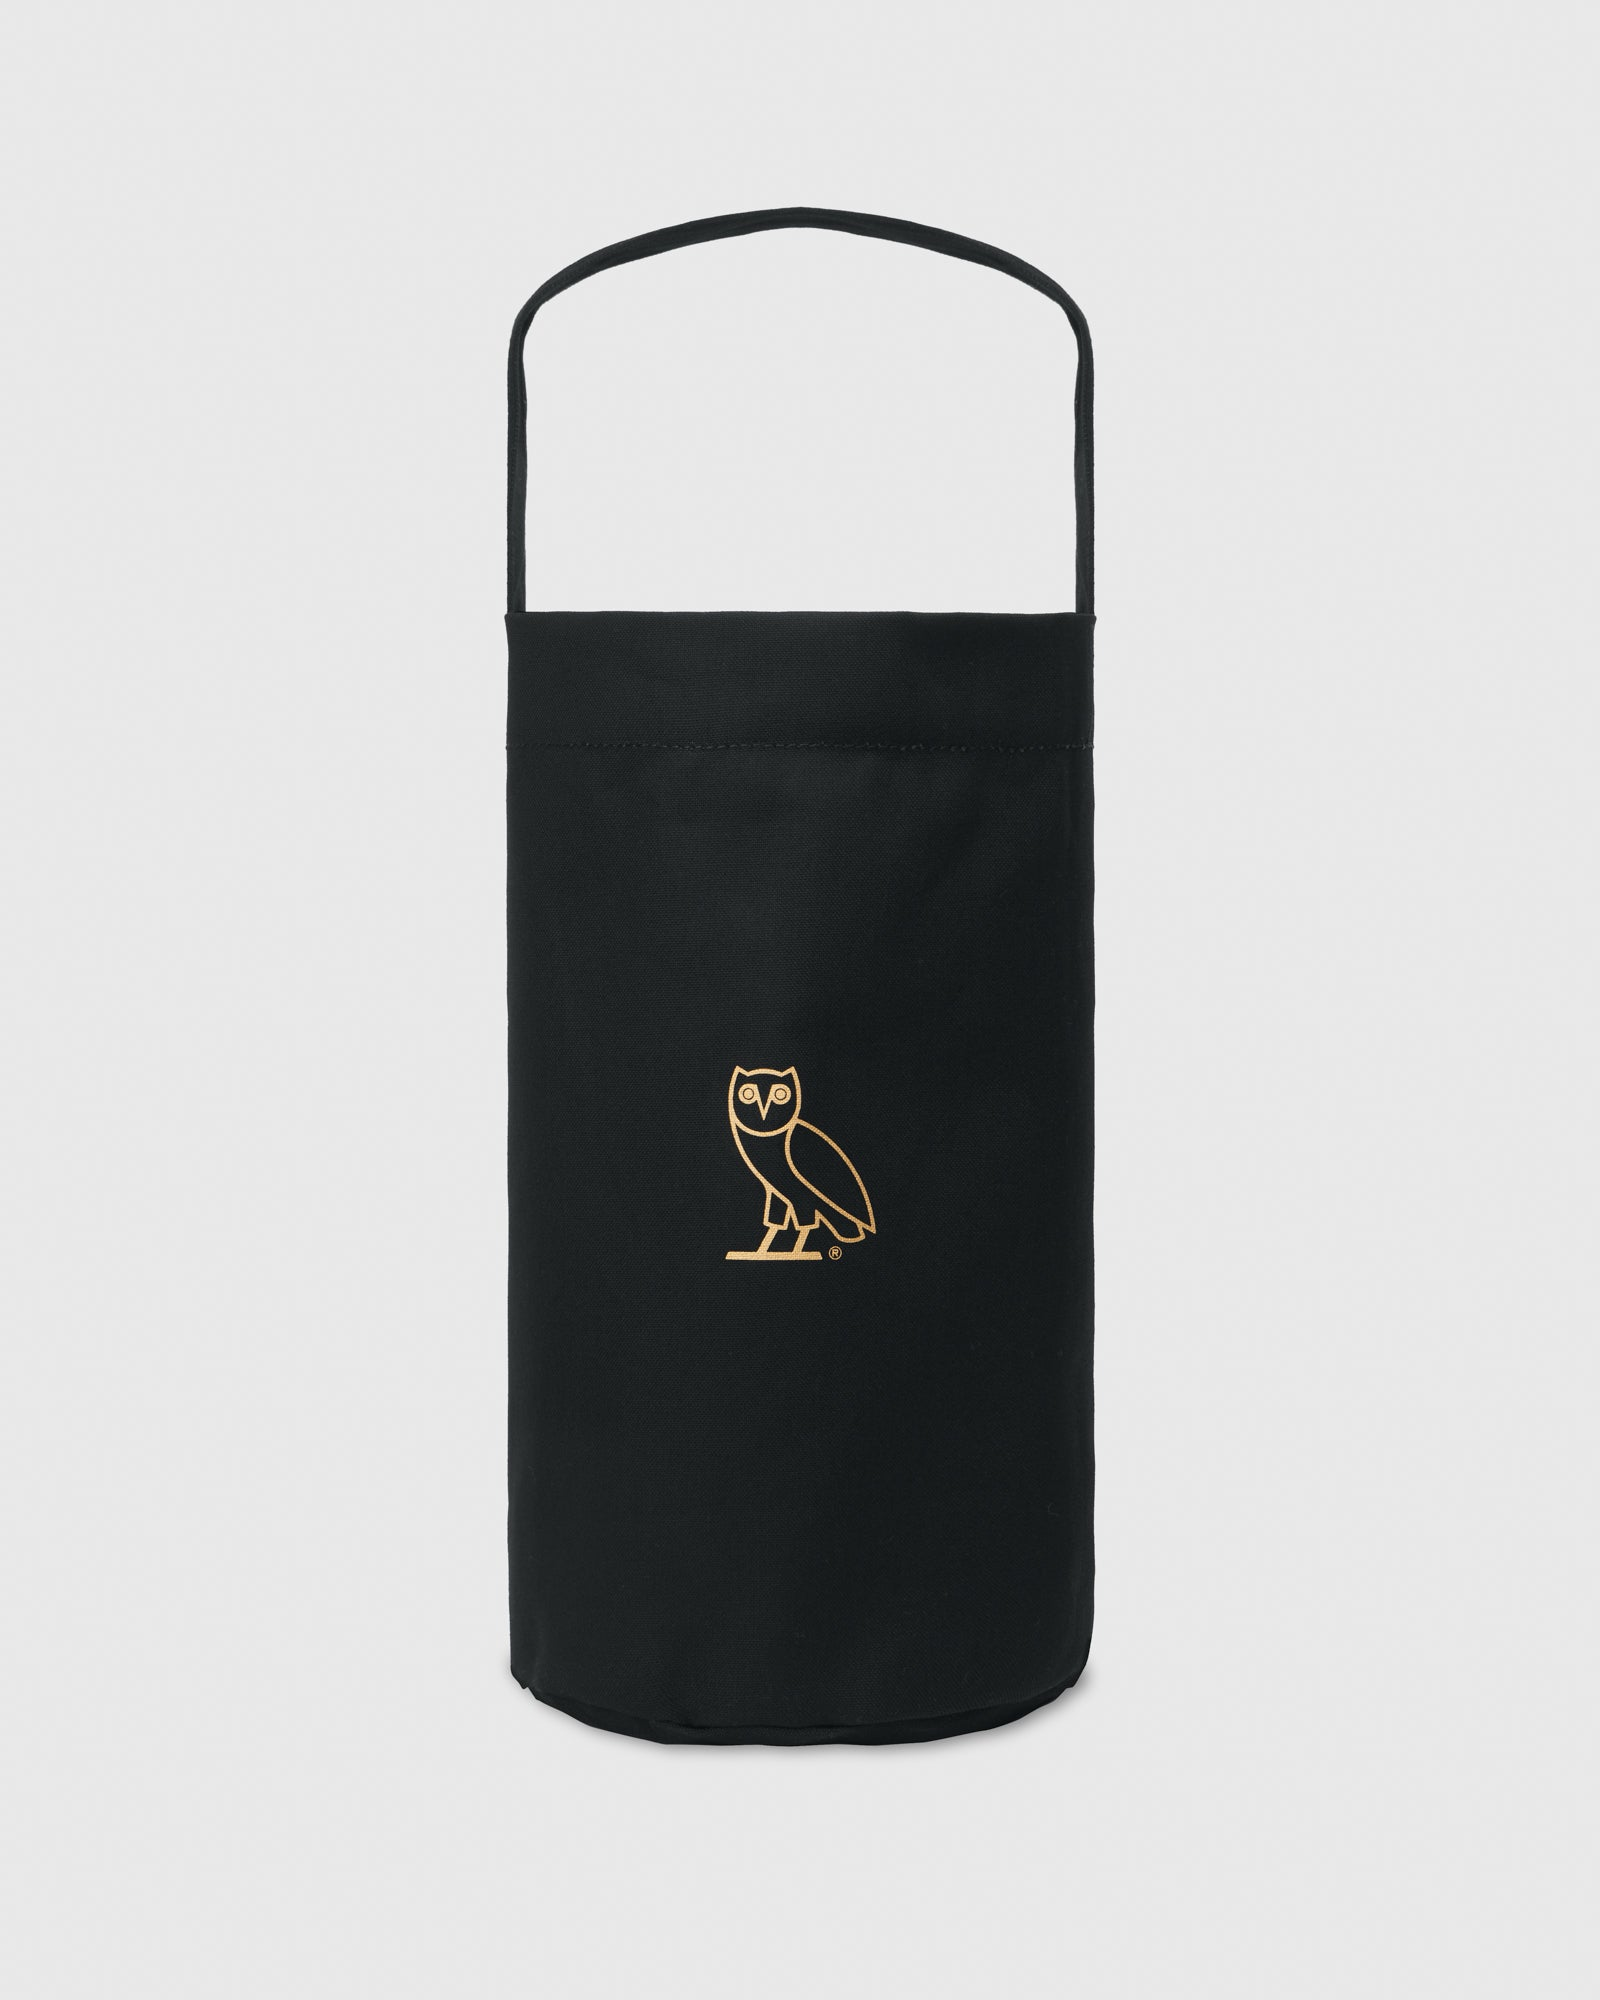 OVO x KUUMBA METAL CAN INCENSE BURNER - BLACK IMAGE #4